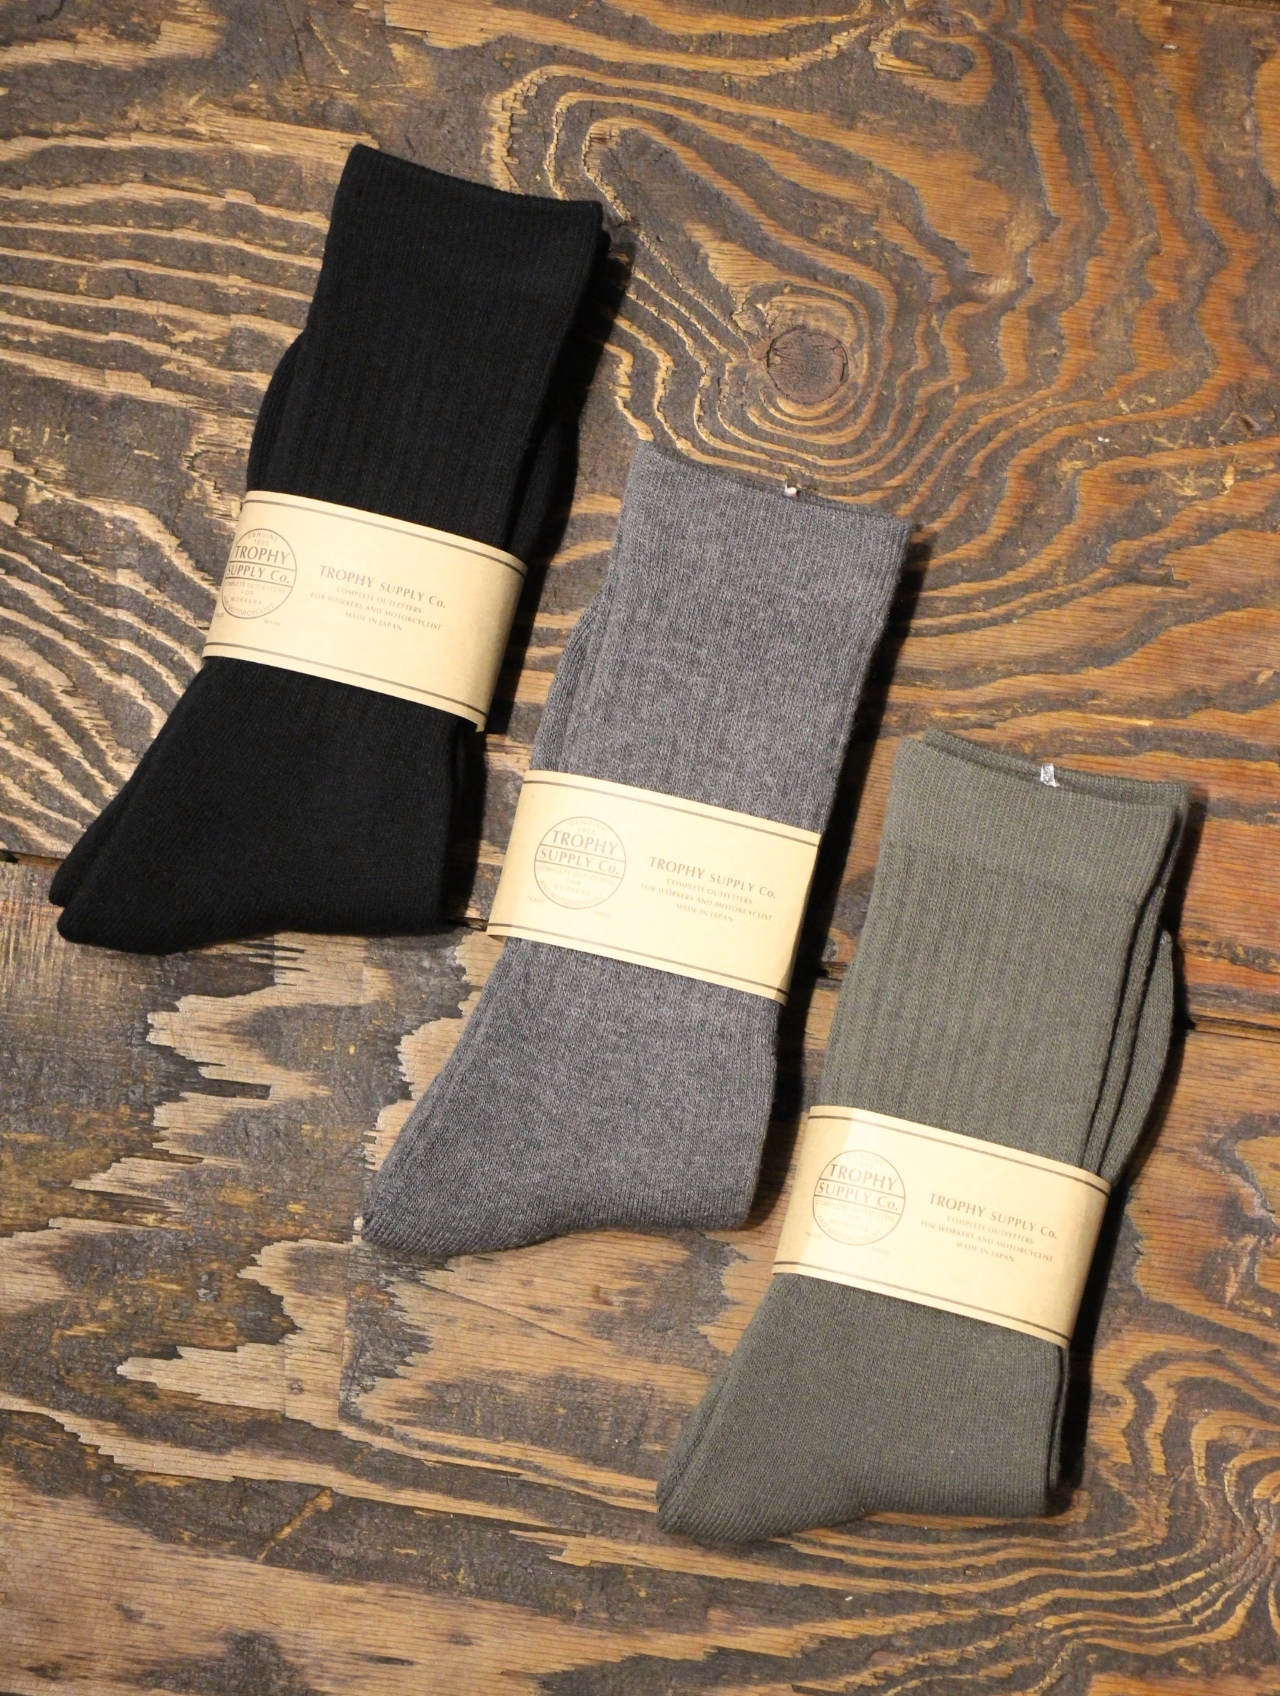 TROPHY CLOTHING  「Regular Boots Socks 」 ブーツソックス